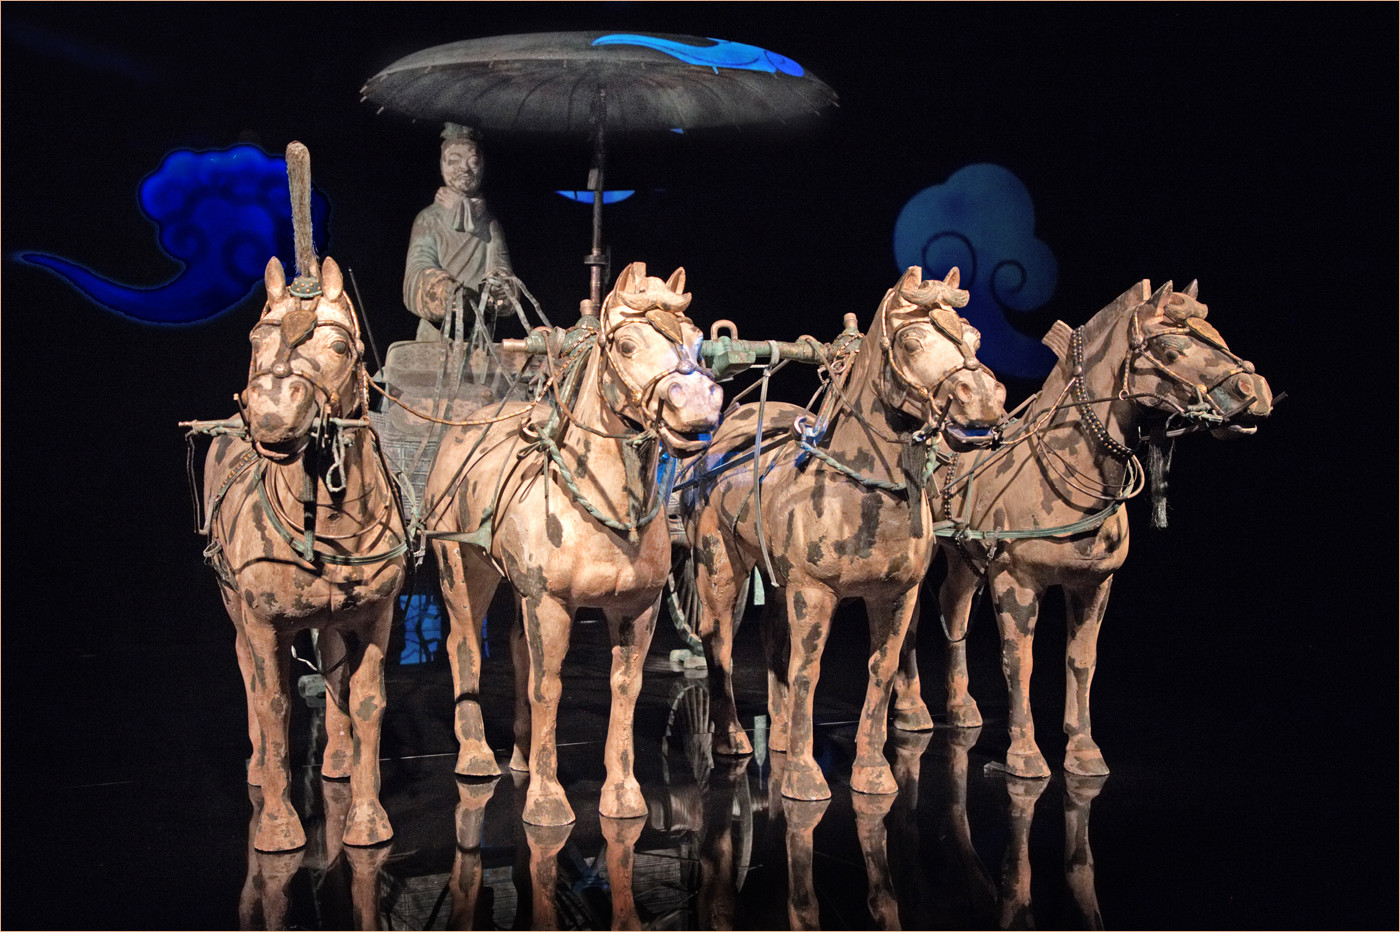 19 BRONZE CHARIOT AND HORSES OF THE TERRACOTTA WARRIORS by Dave Brooker